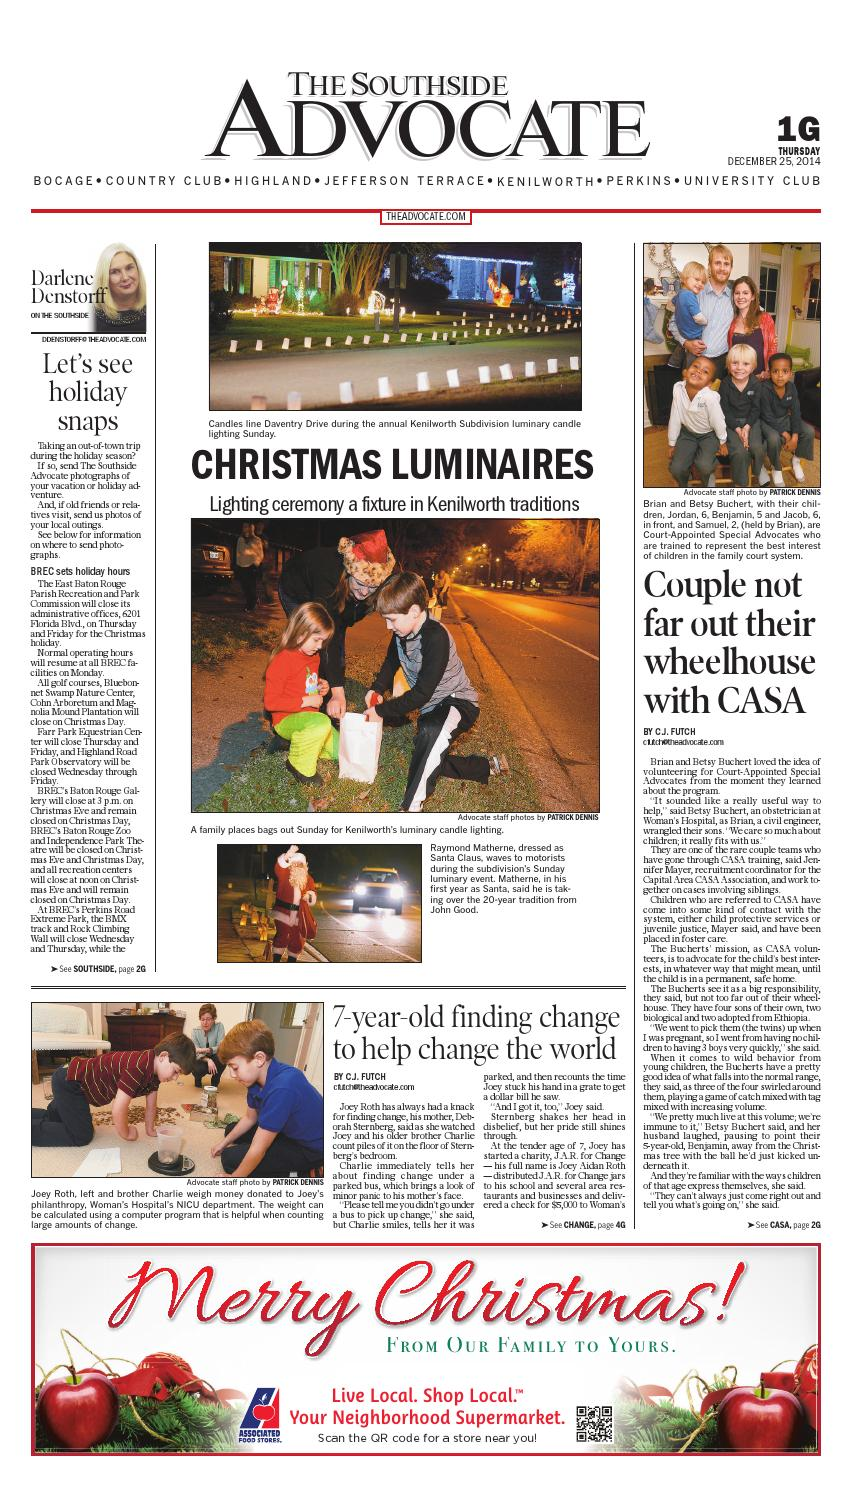 The Southside Advocate (12/25/14) by The Advocate - issuu